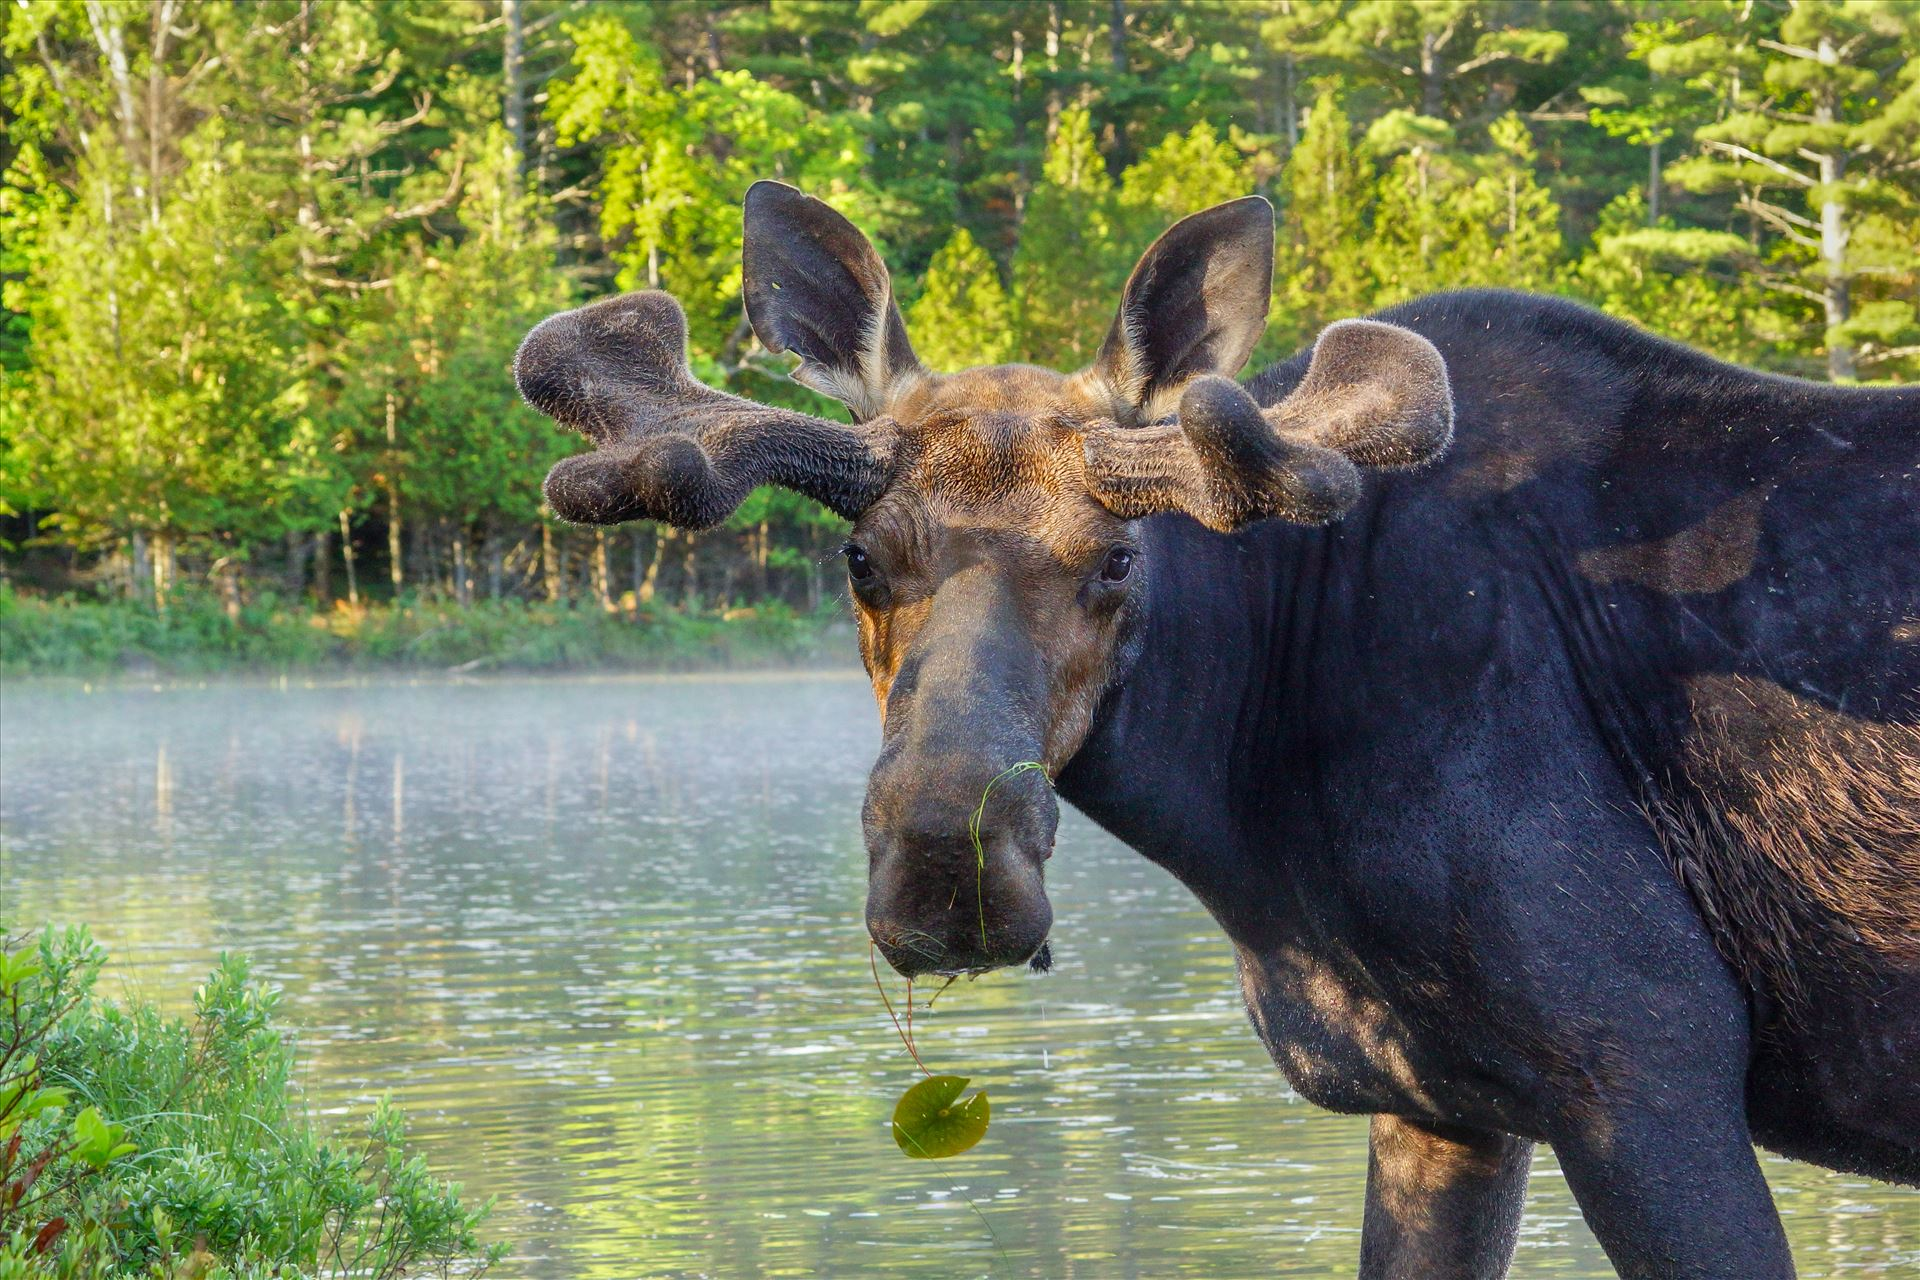 Up Close Bull Moose - Taken in June 2015 in Northern Maine, USA by Buckmaster